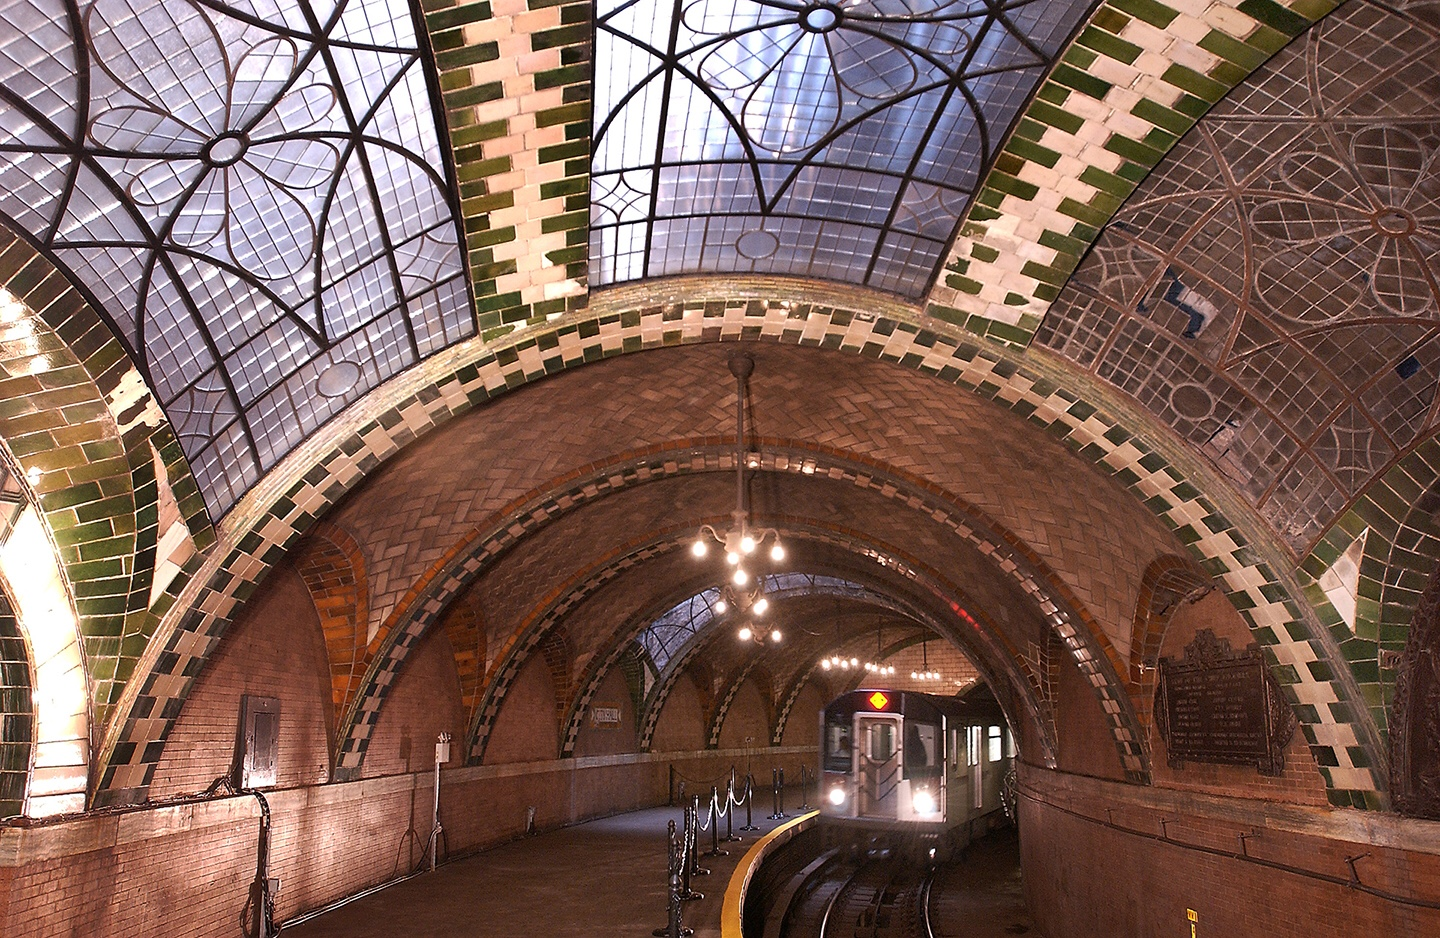 The old City Hall subway Station, New York.